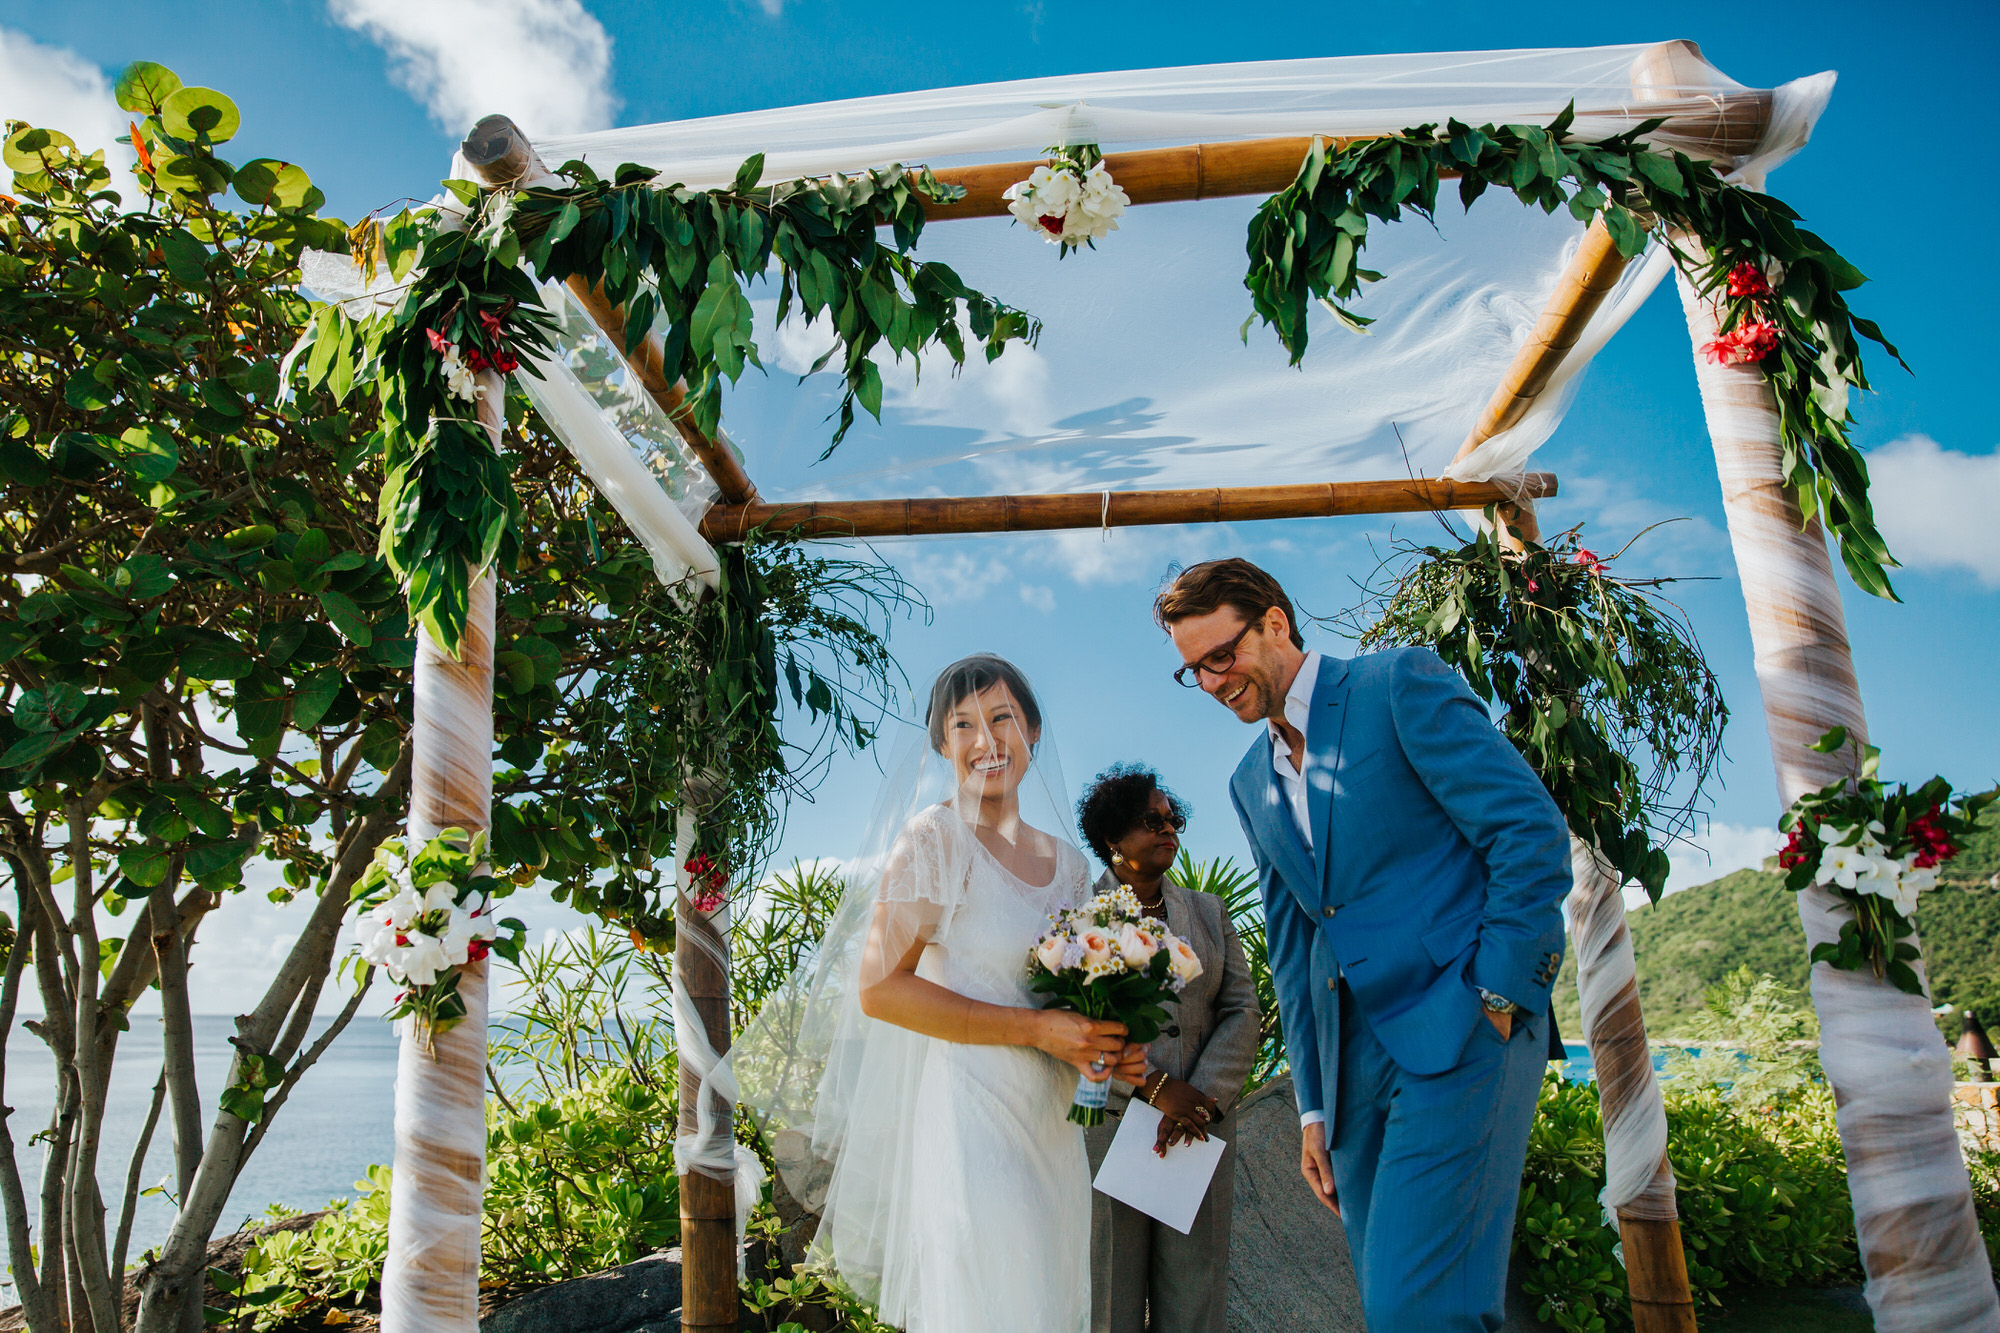 Smiling bride and groom under huppah - photo by Ken Pak